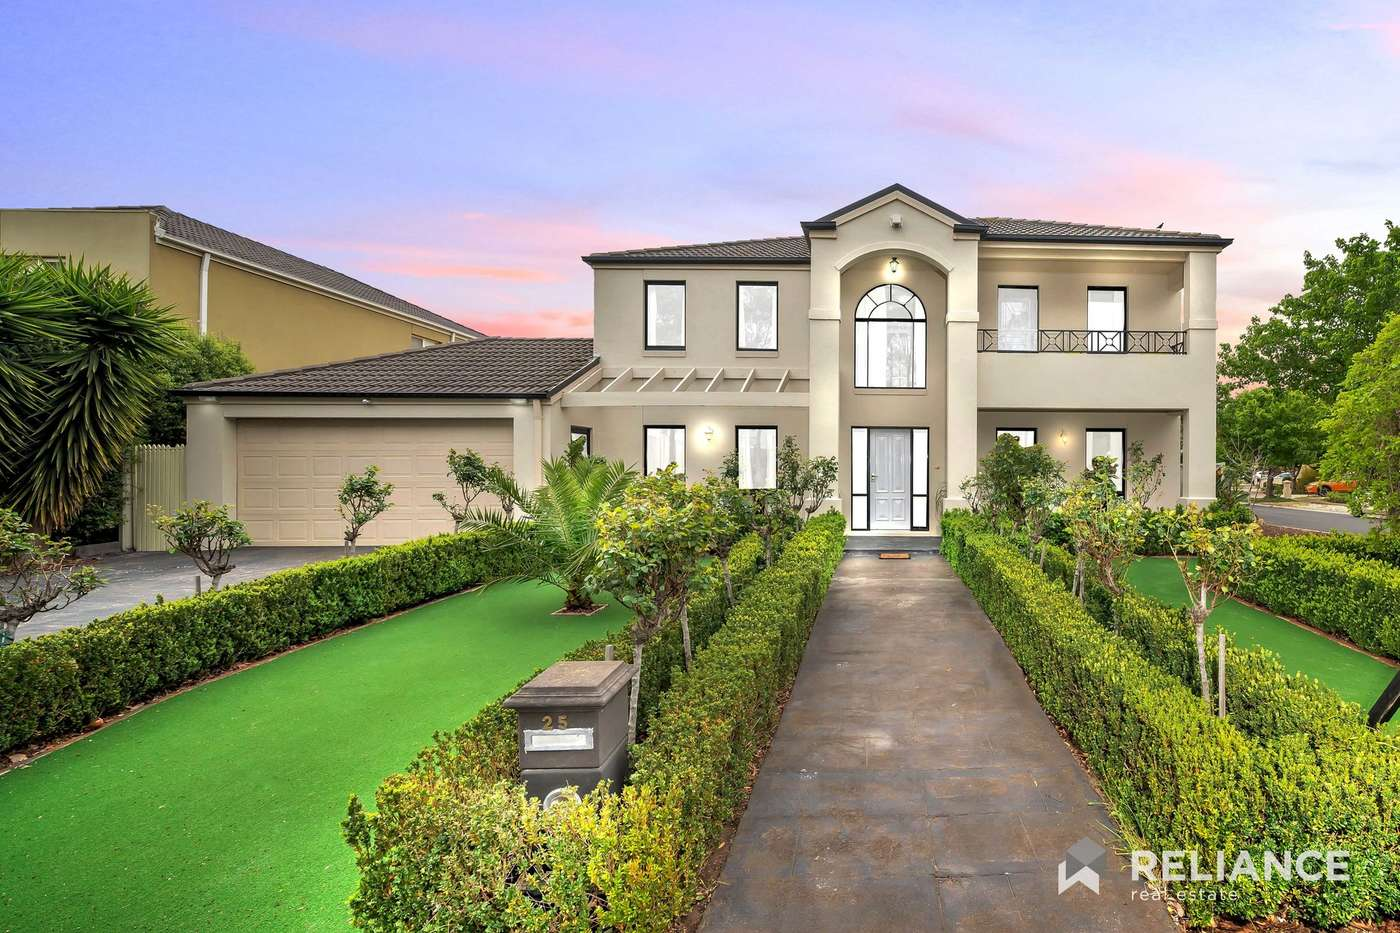 Main view of Homely house listing, 25 Blenheim Way, Caroline Springs, VIC 3023